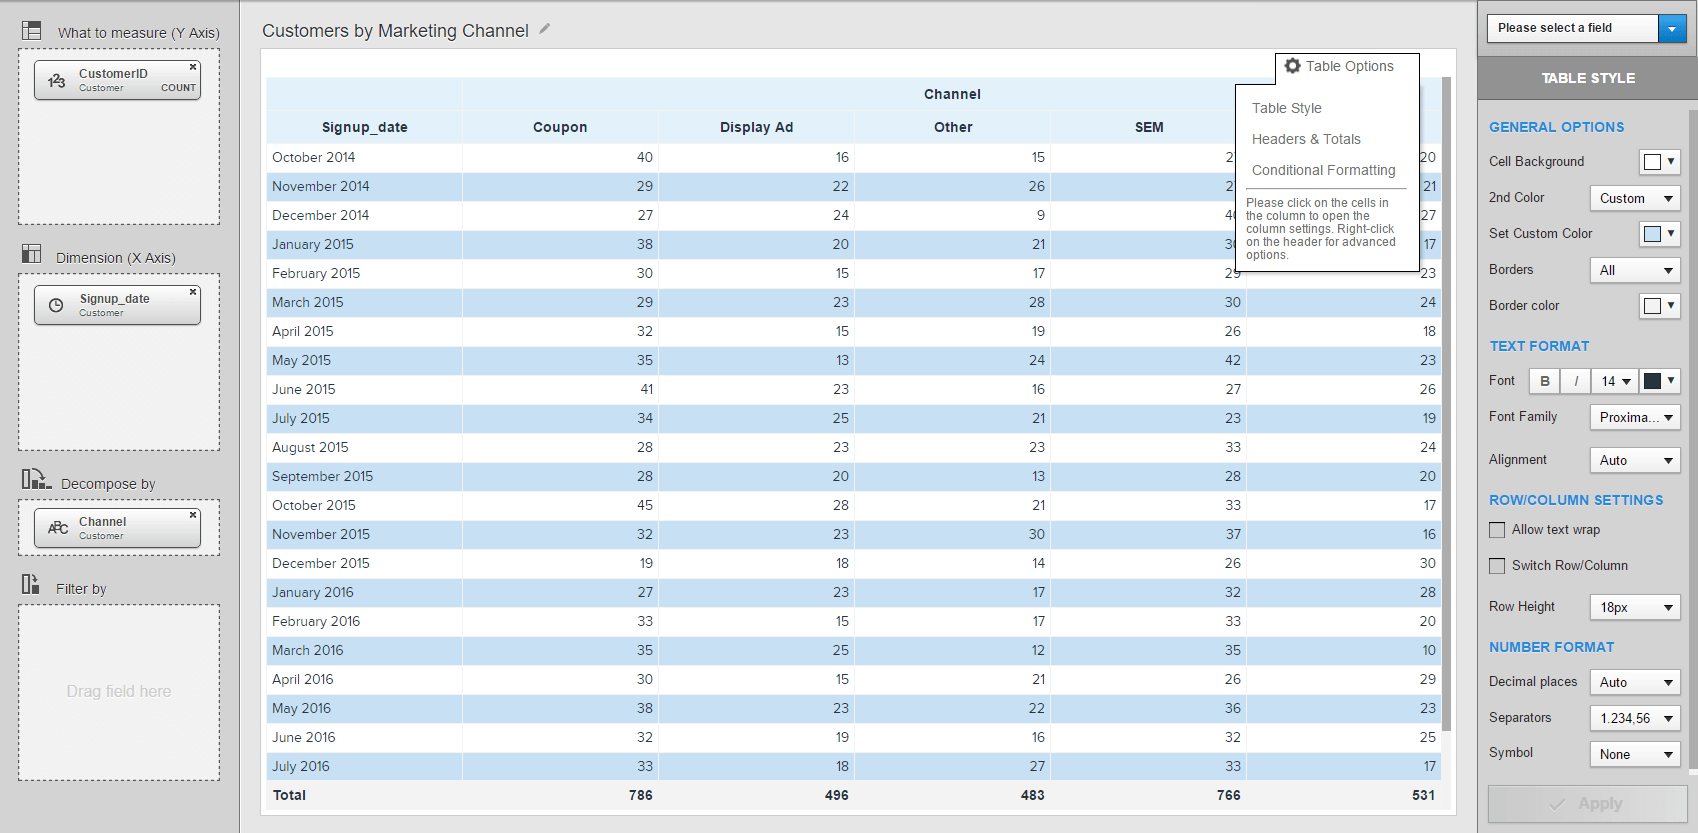 datapine's adavanced table style options